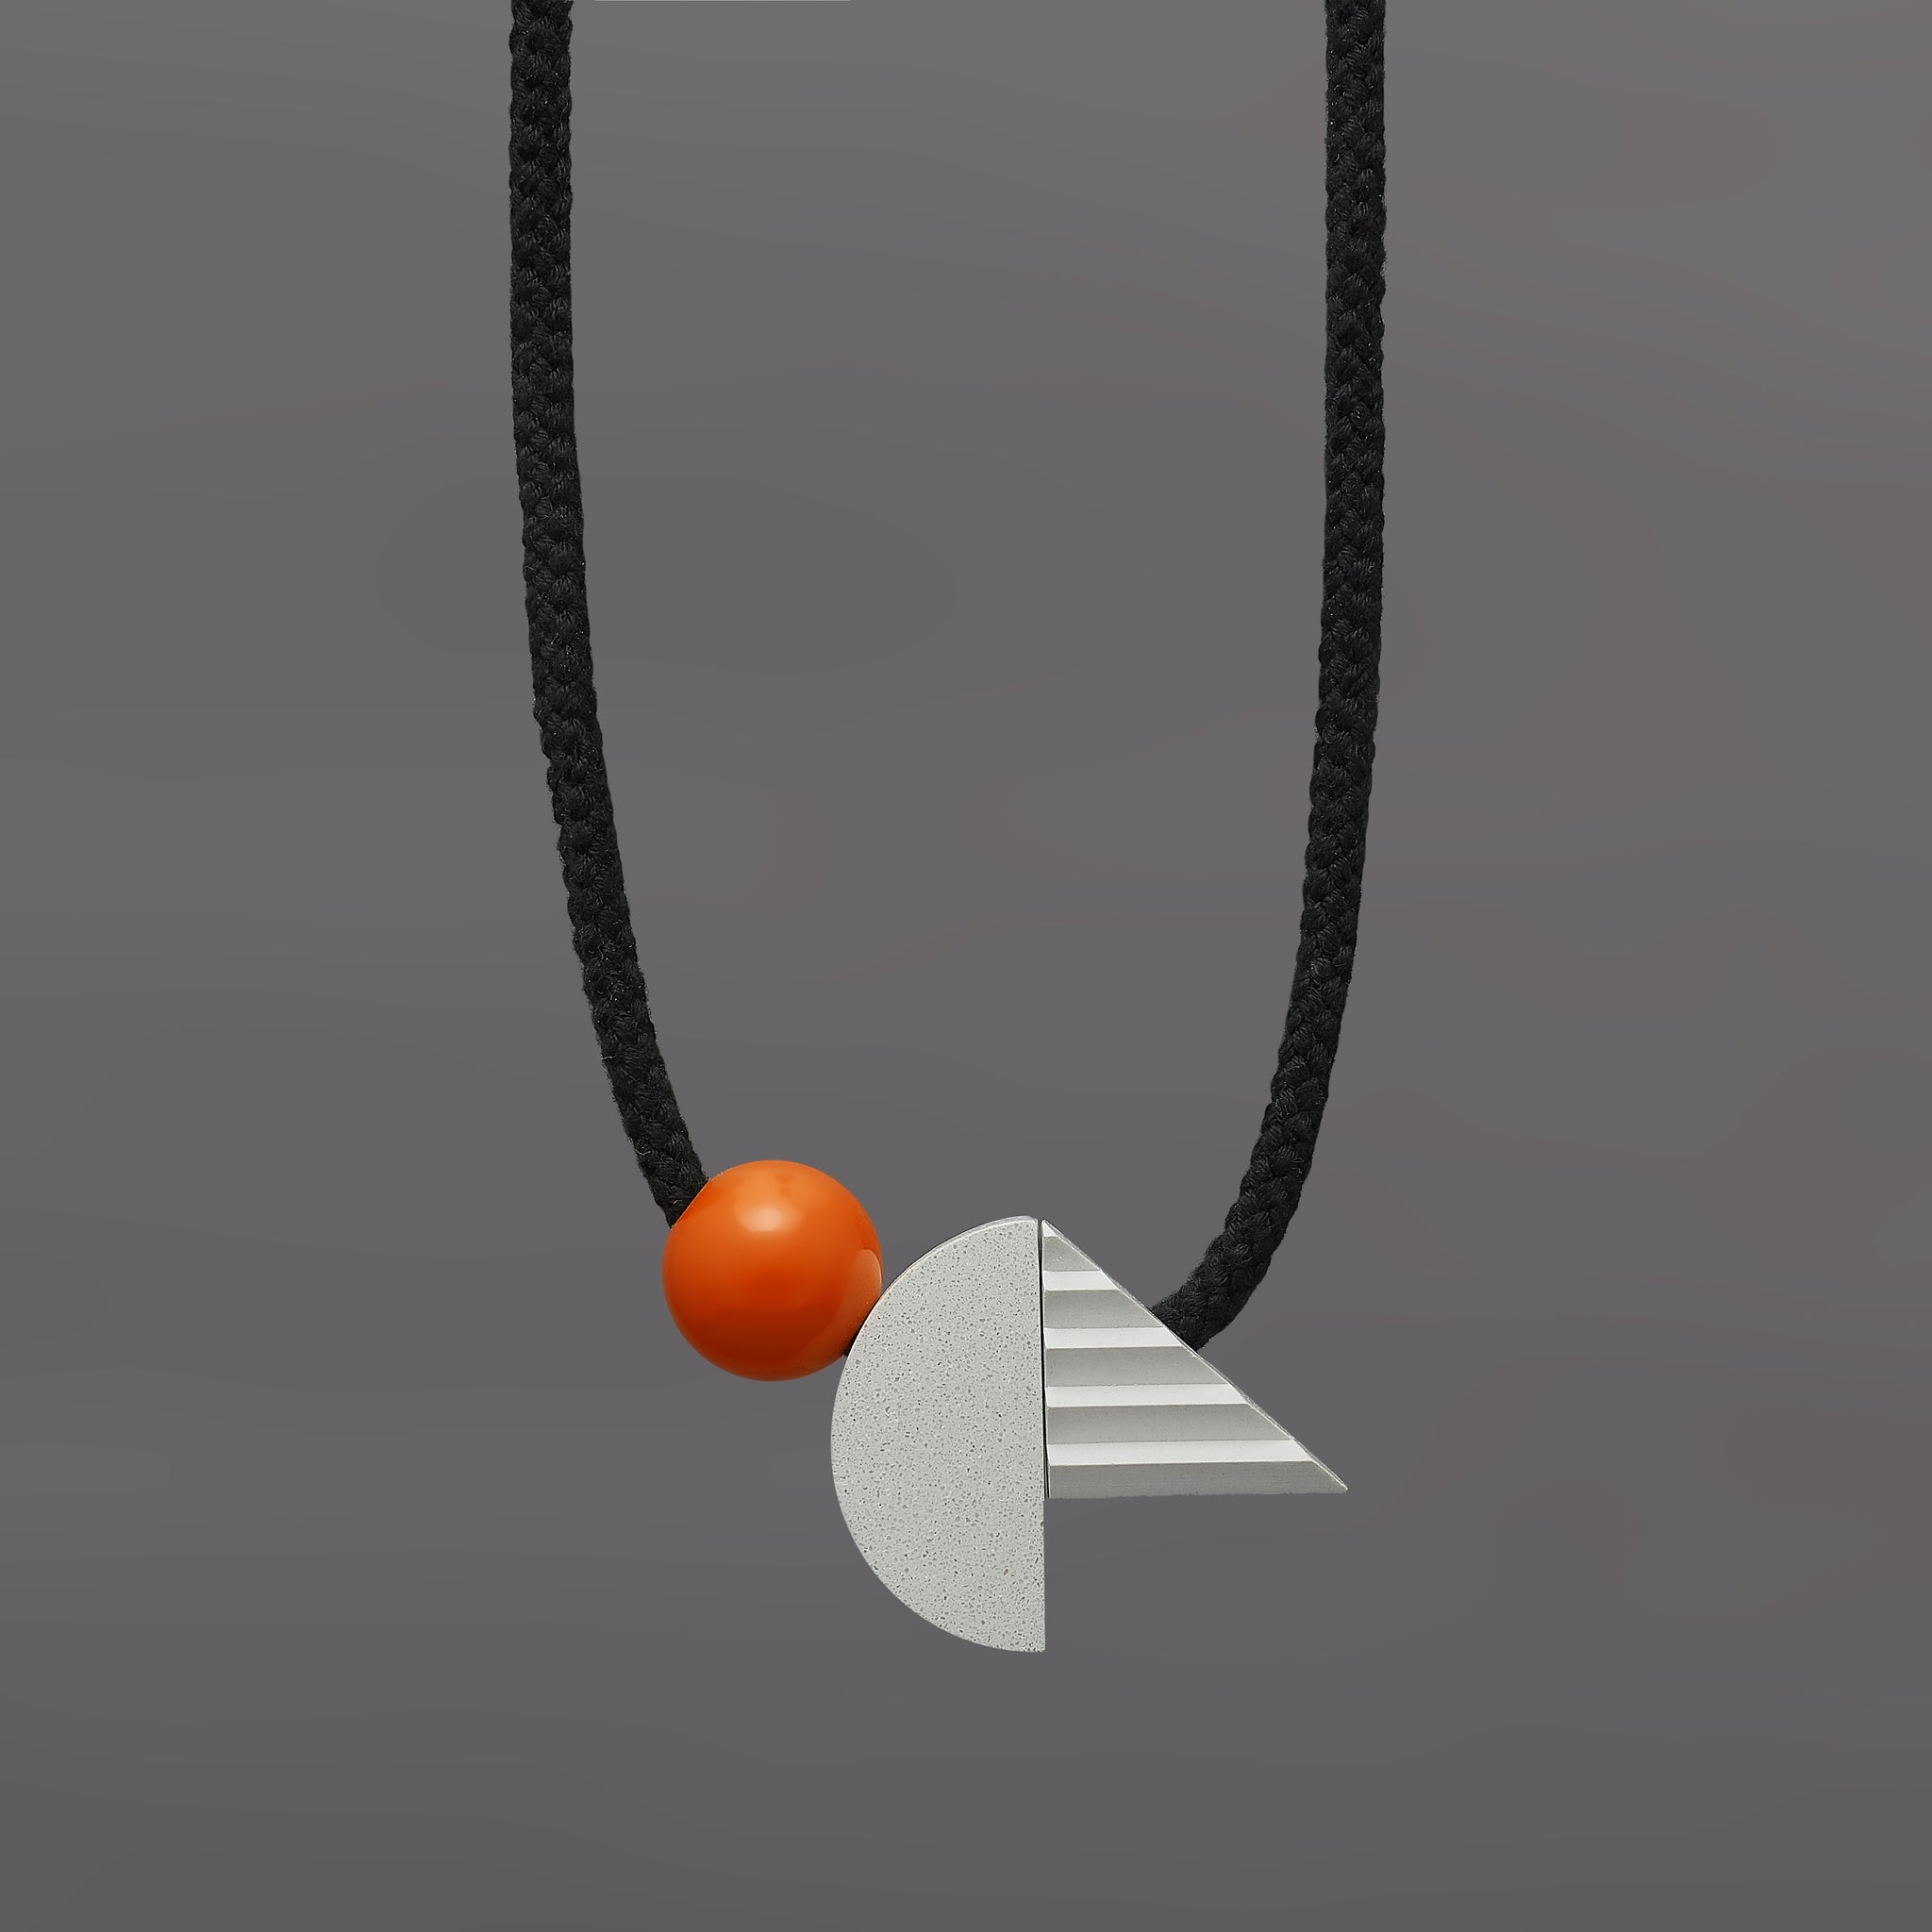 The pop necklace is composed of 2 handcast shapes. A lovely concrete-effect curve measuring 50mm x 25mm which sits beside a cast ridged triangle which measures 30mm x 45mm. The bright orange ball (25mm) offers a pop of colour beside the understated concrete resin shapes.